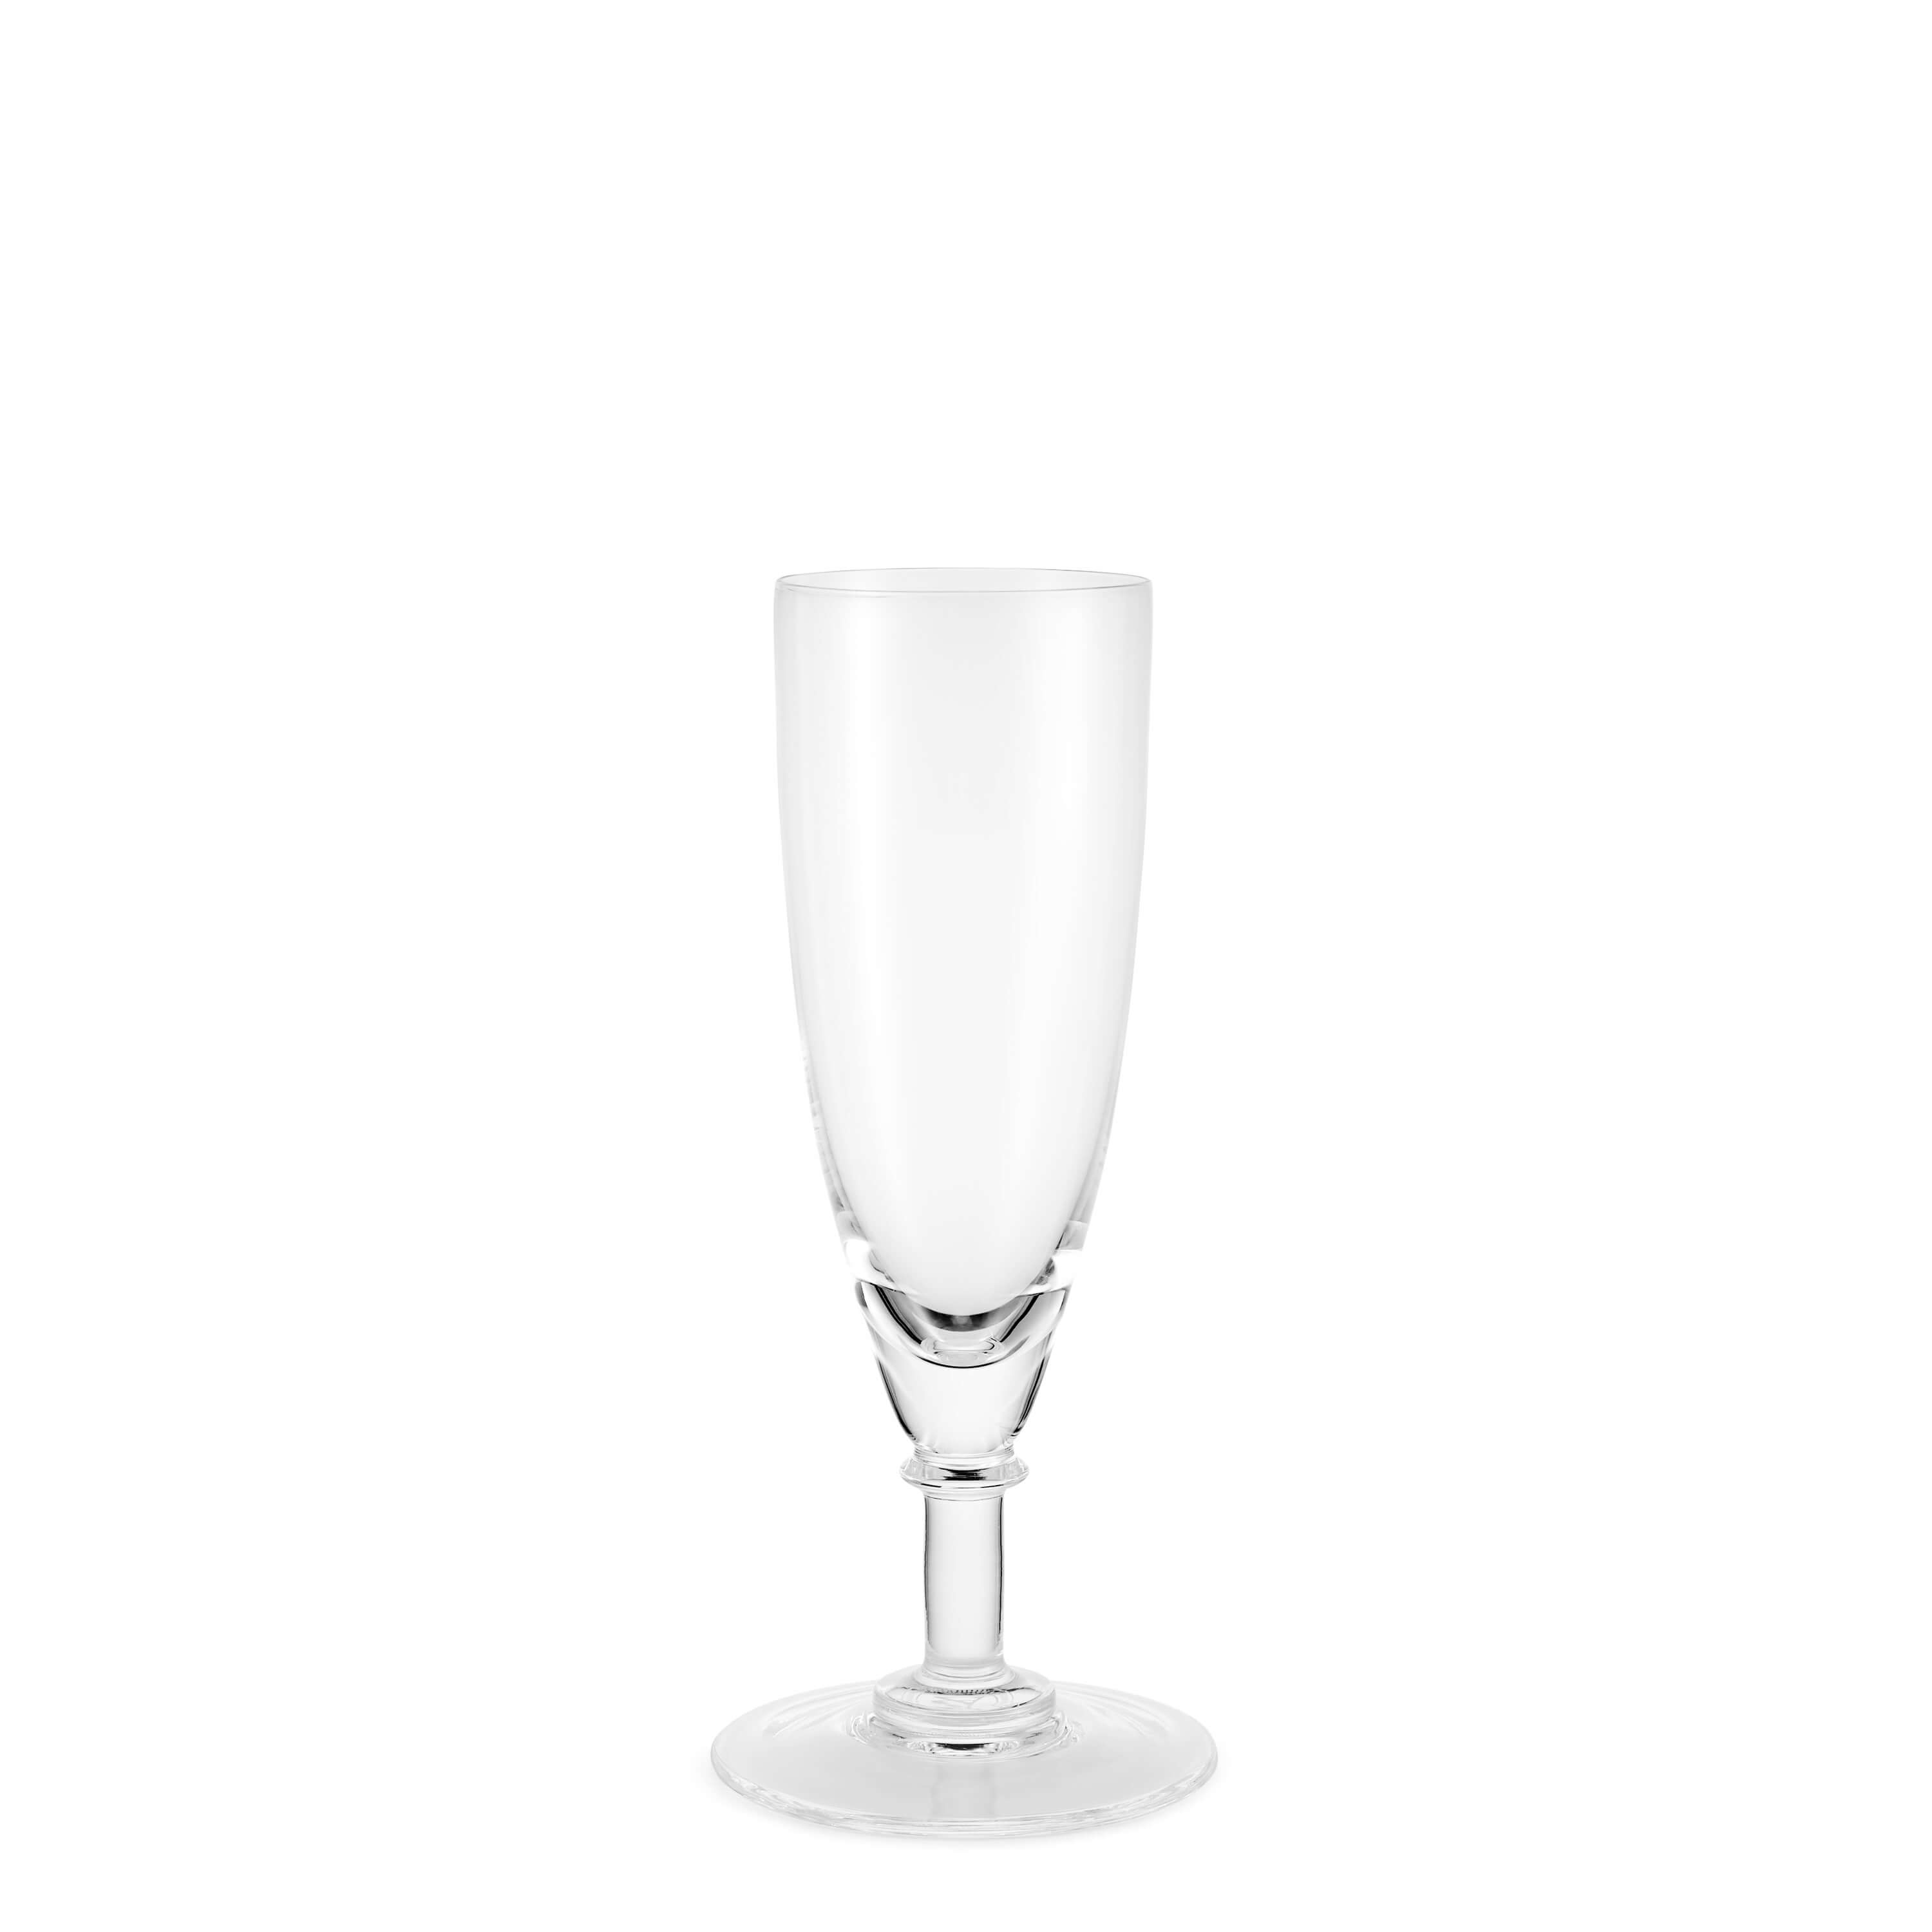 Crystal champagne flute - Glassware - The Wosleley Shop